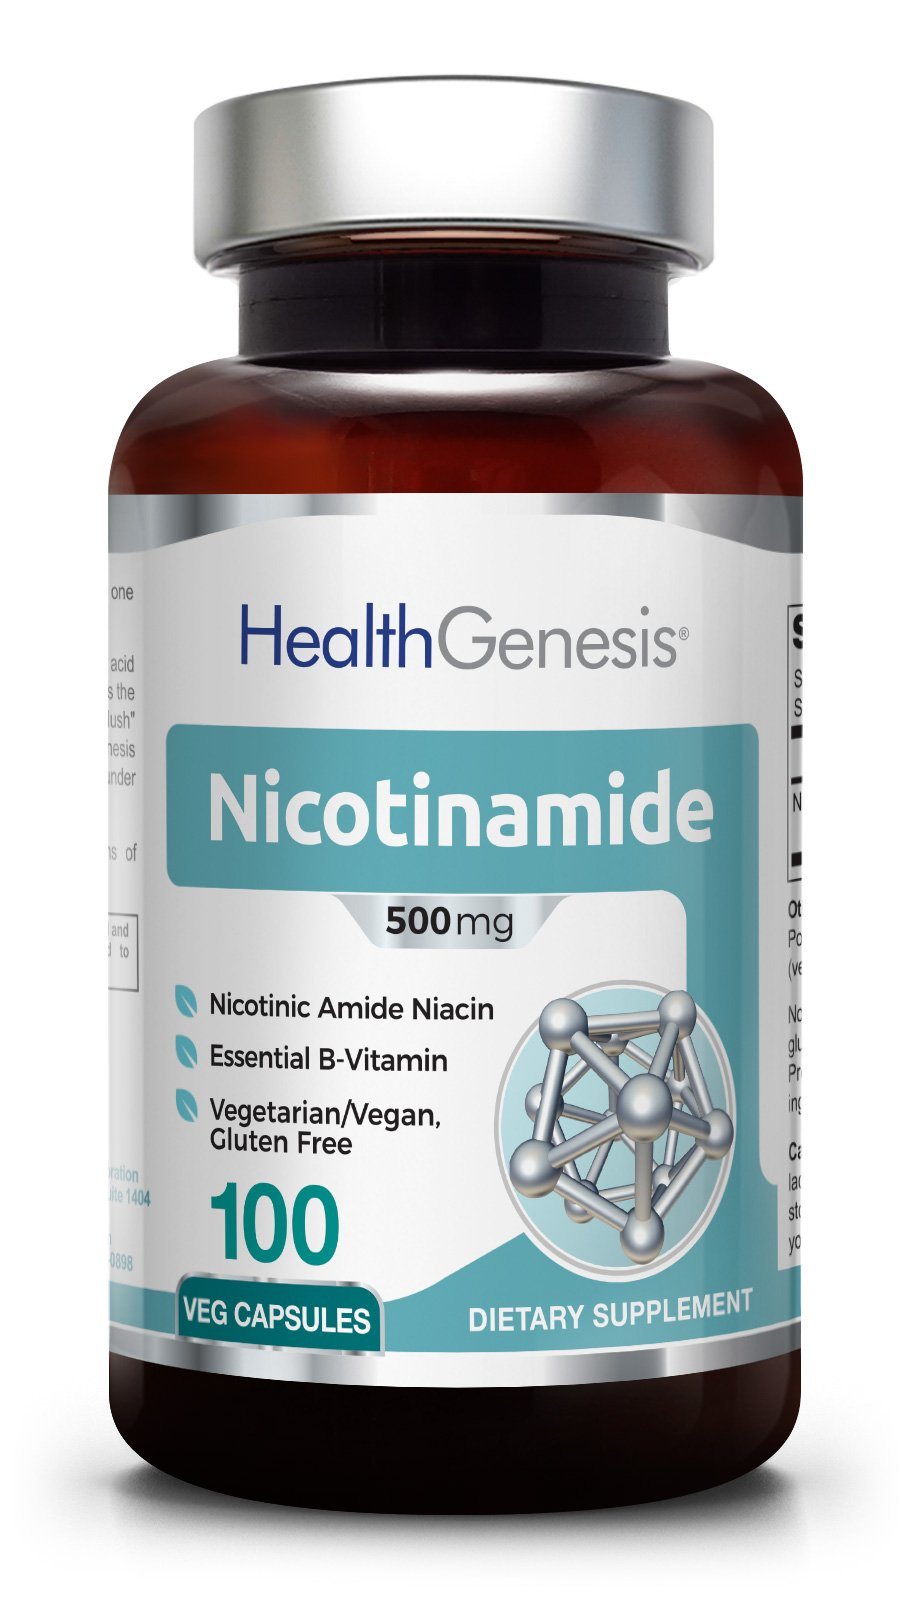 B3 Nicotinamide 500 mg 100 Vegetarian Capsules - Natural Flush-Free Vitamin Vcaps Formula | Gluten-Free Nicotinic Amide Niacin | Supports Skin Health | Healthy Cell Repair Support